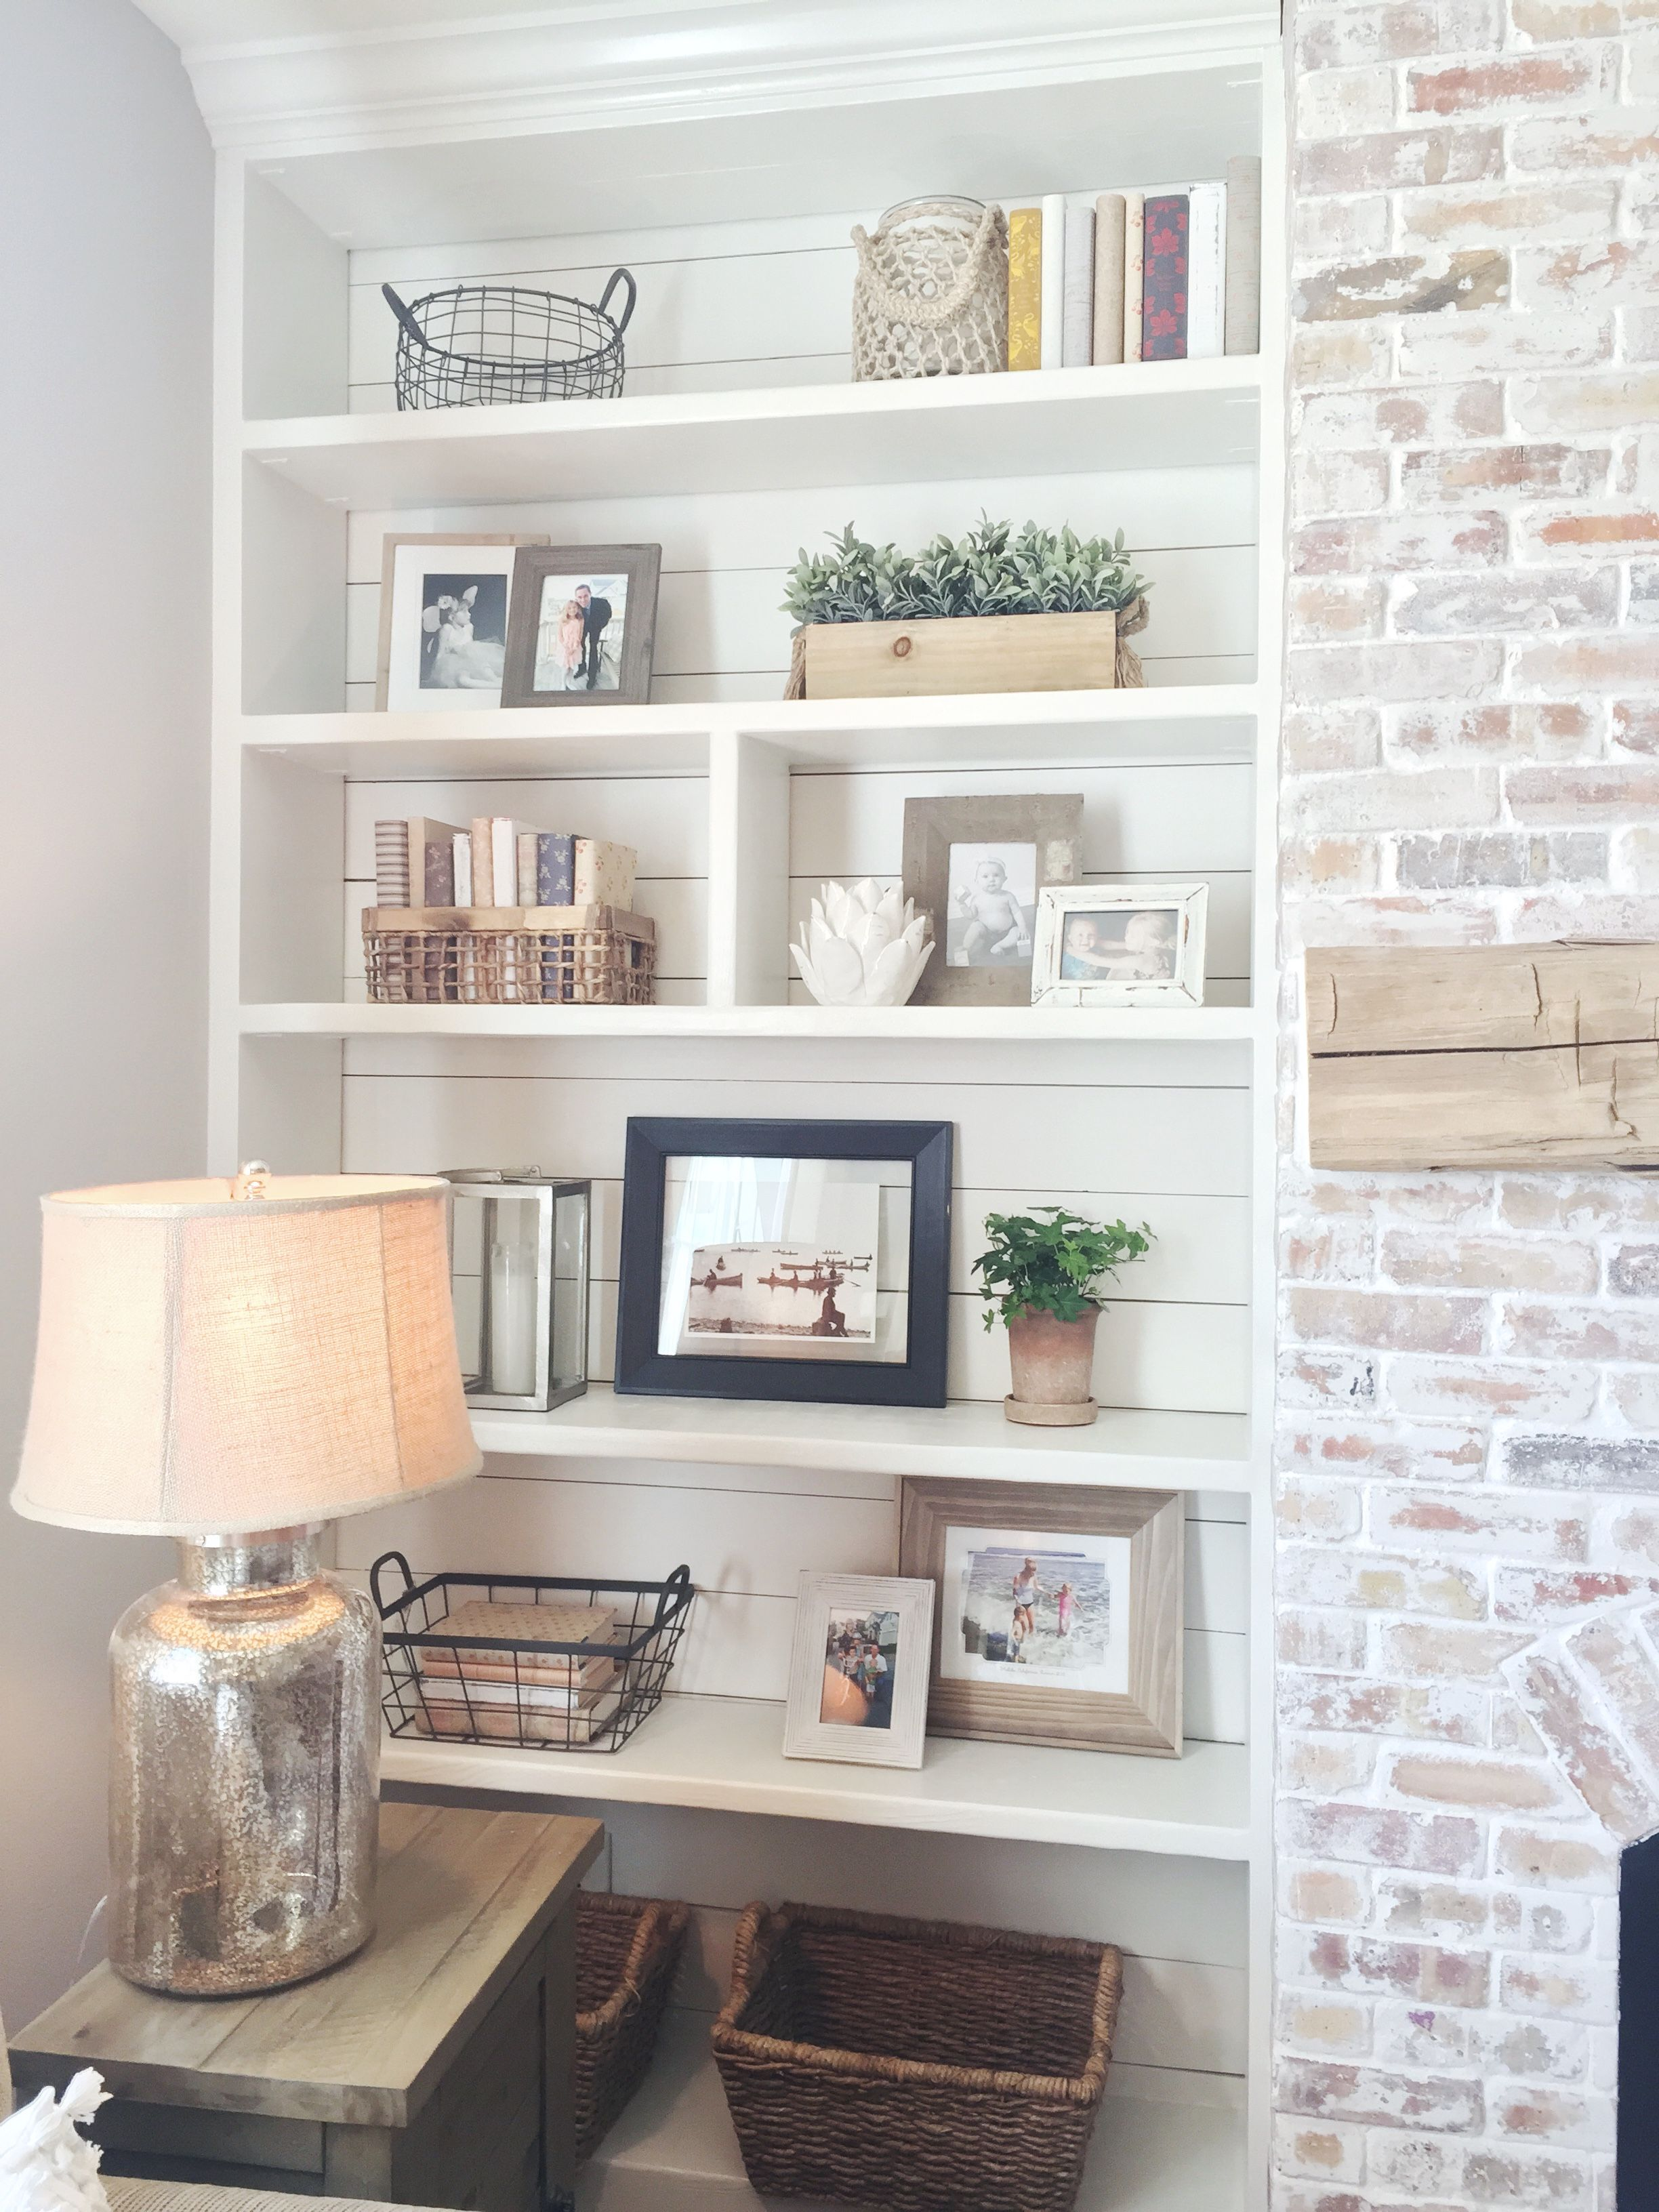 Built-in bookshelves, styling, shiplap, whitewash brick fireplace ...